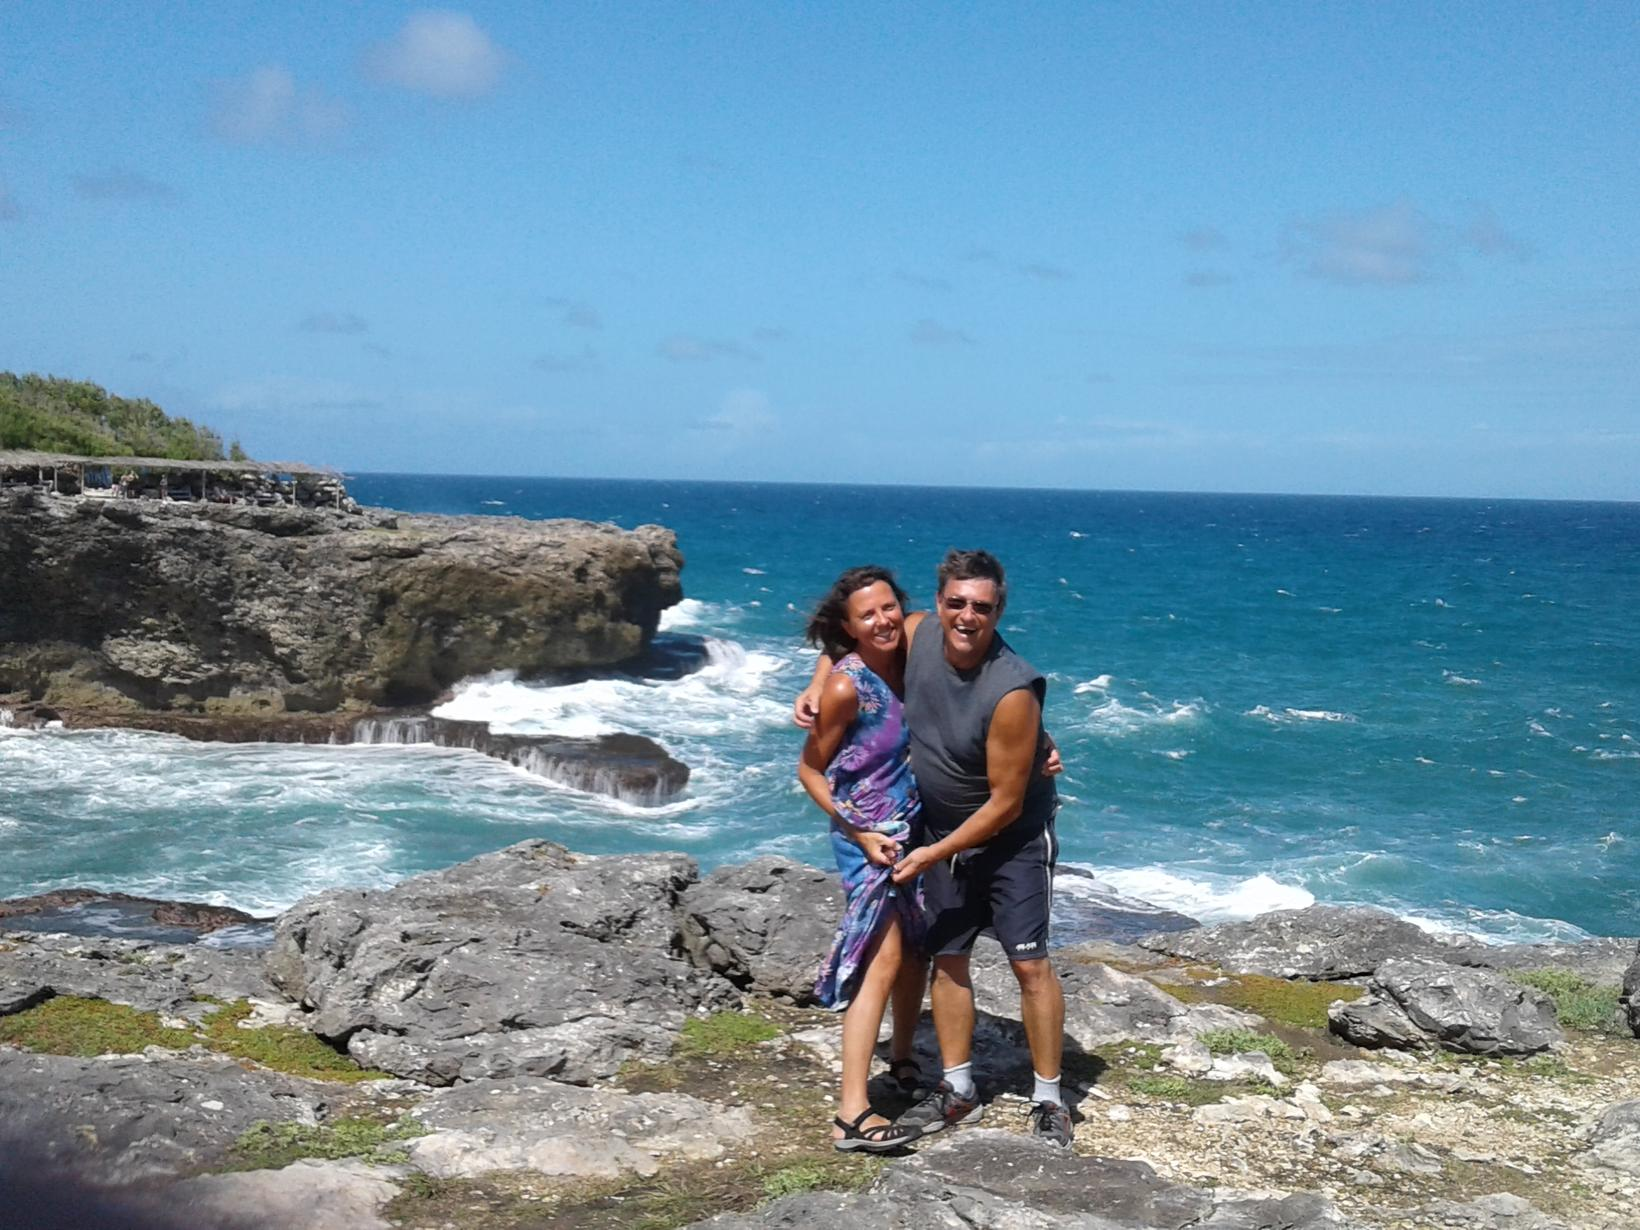 Joanne & James from Perth, Ontario, Canada